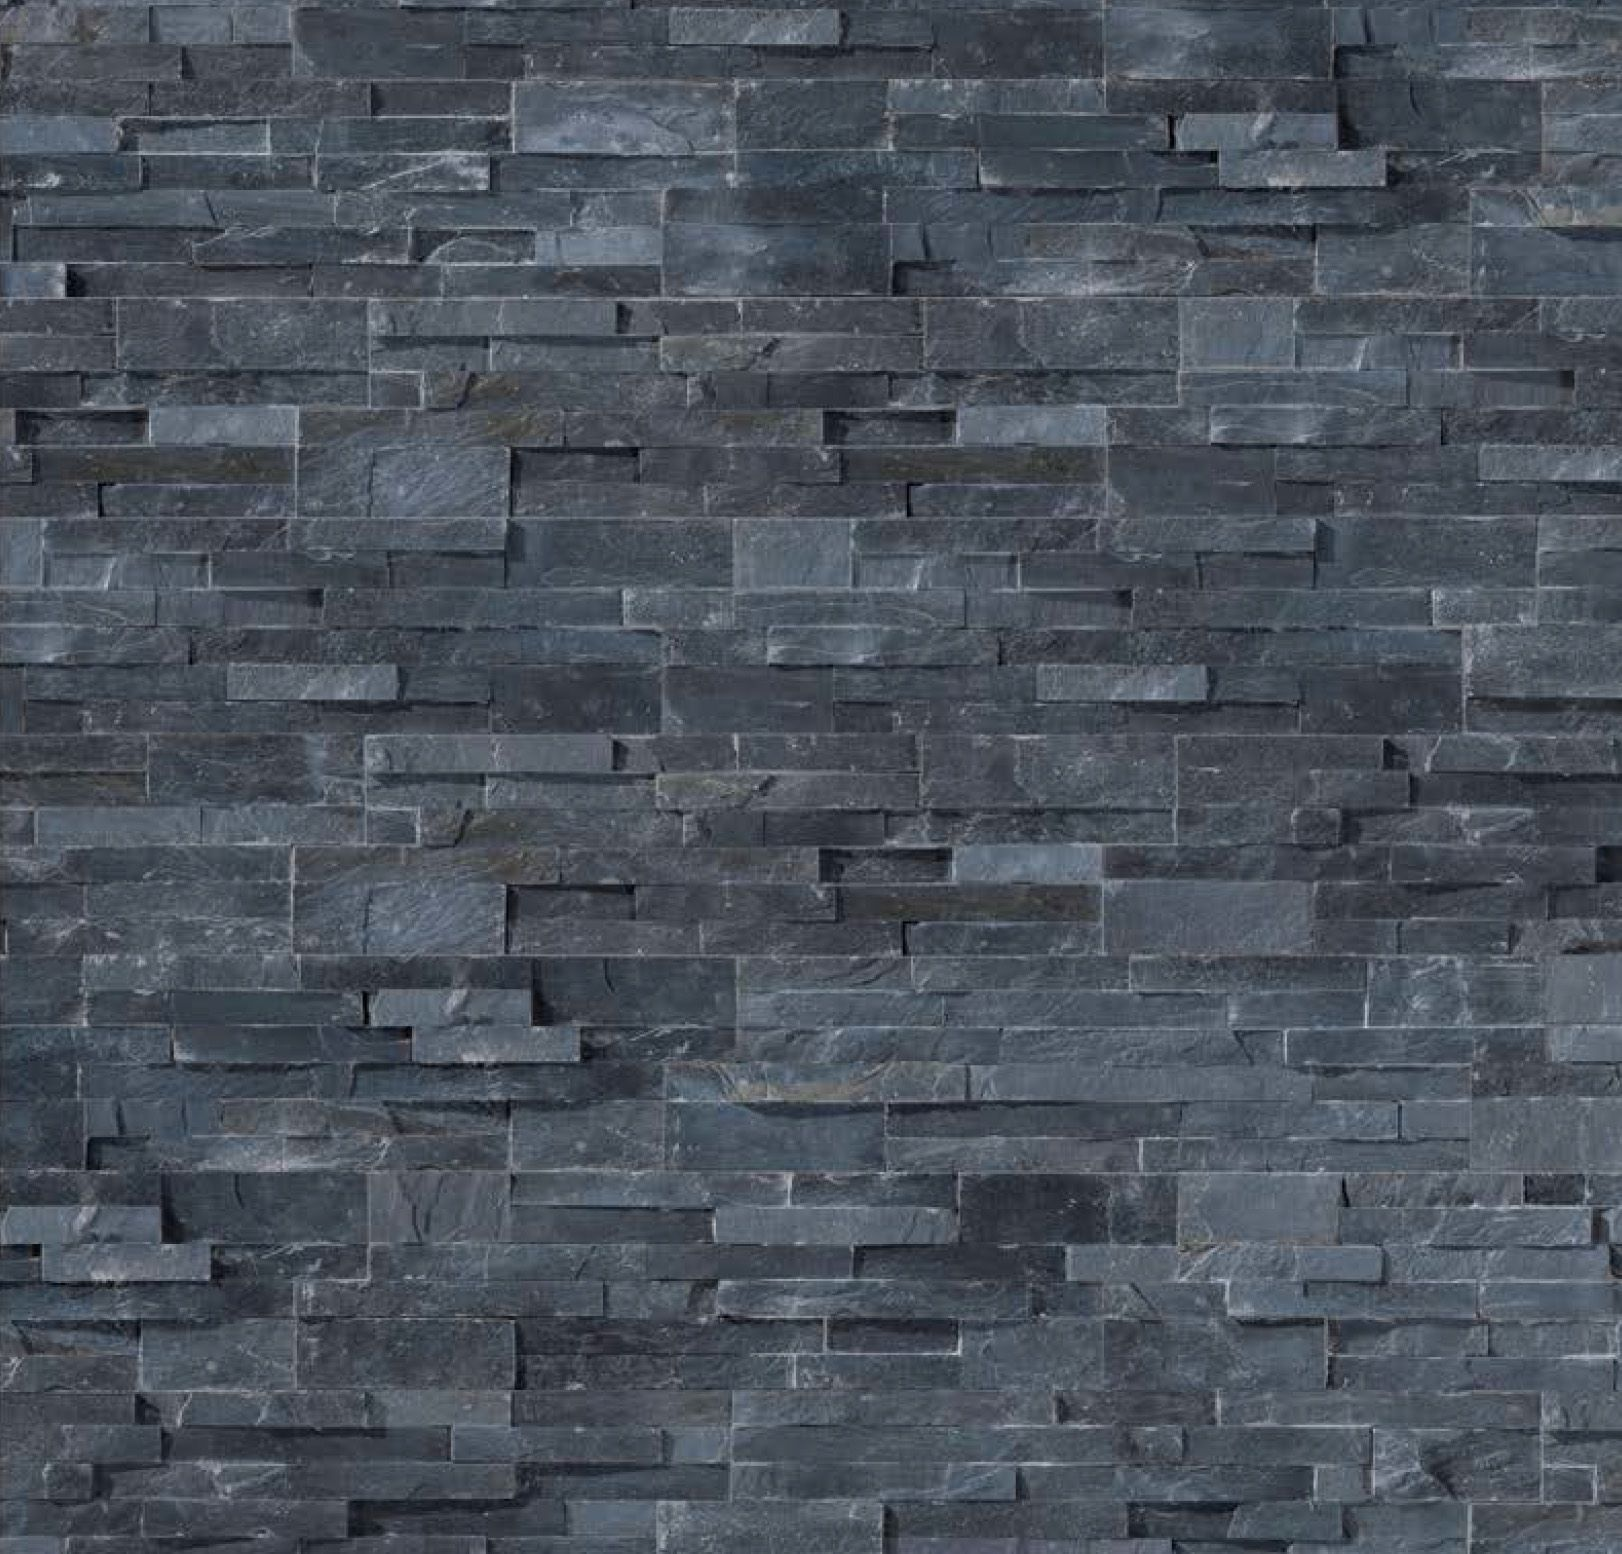 Pin by marina on textures textura de piedra texturas - Exterior wall finishes materials ...